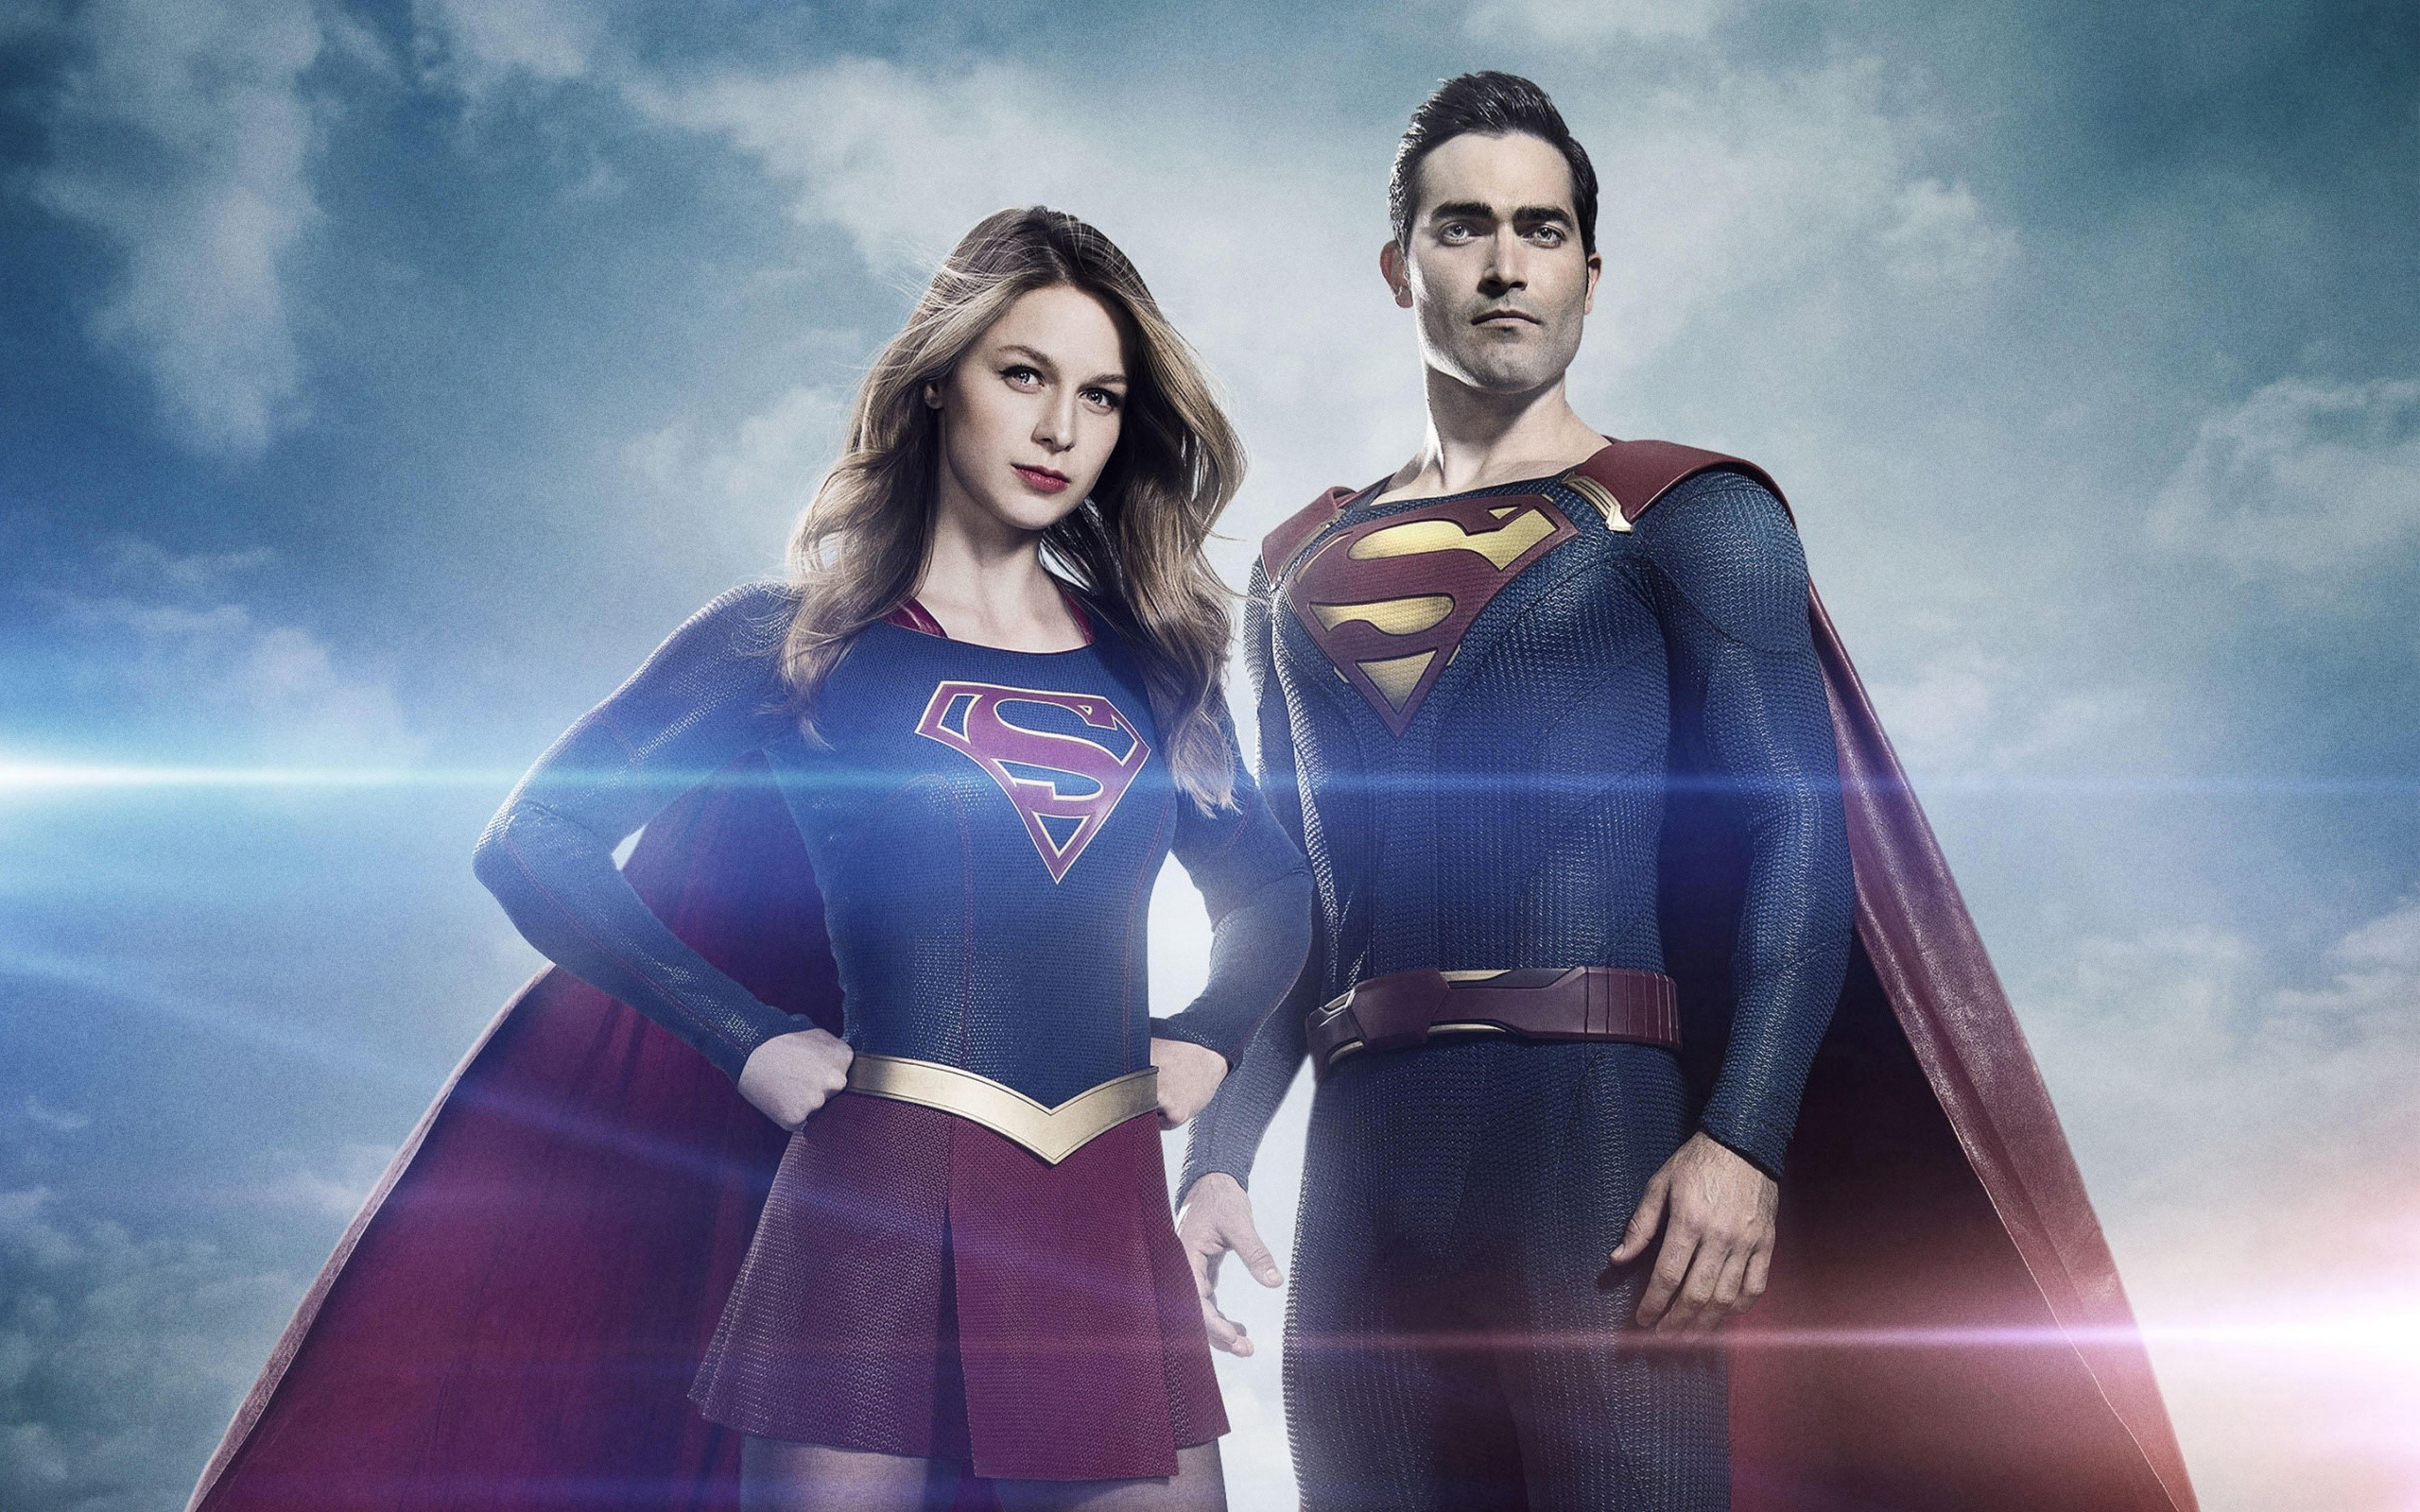 Wallpaper Supergirl y Superman Images